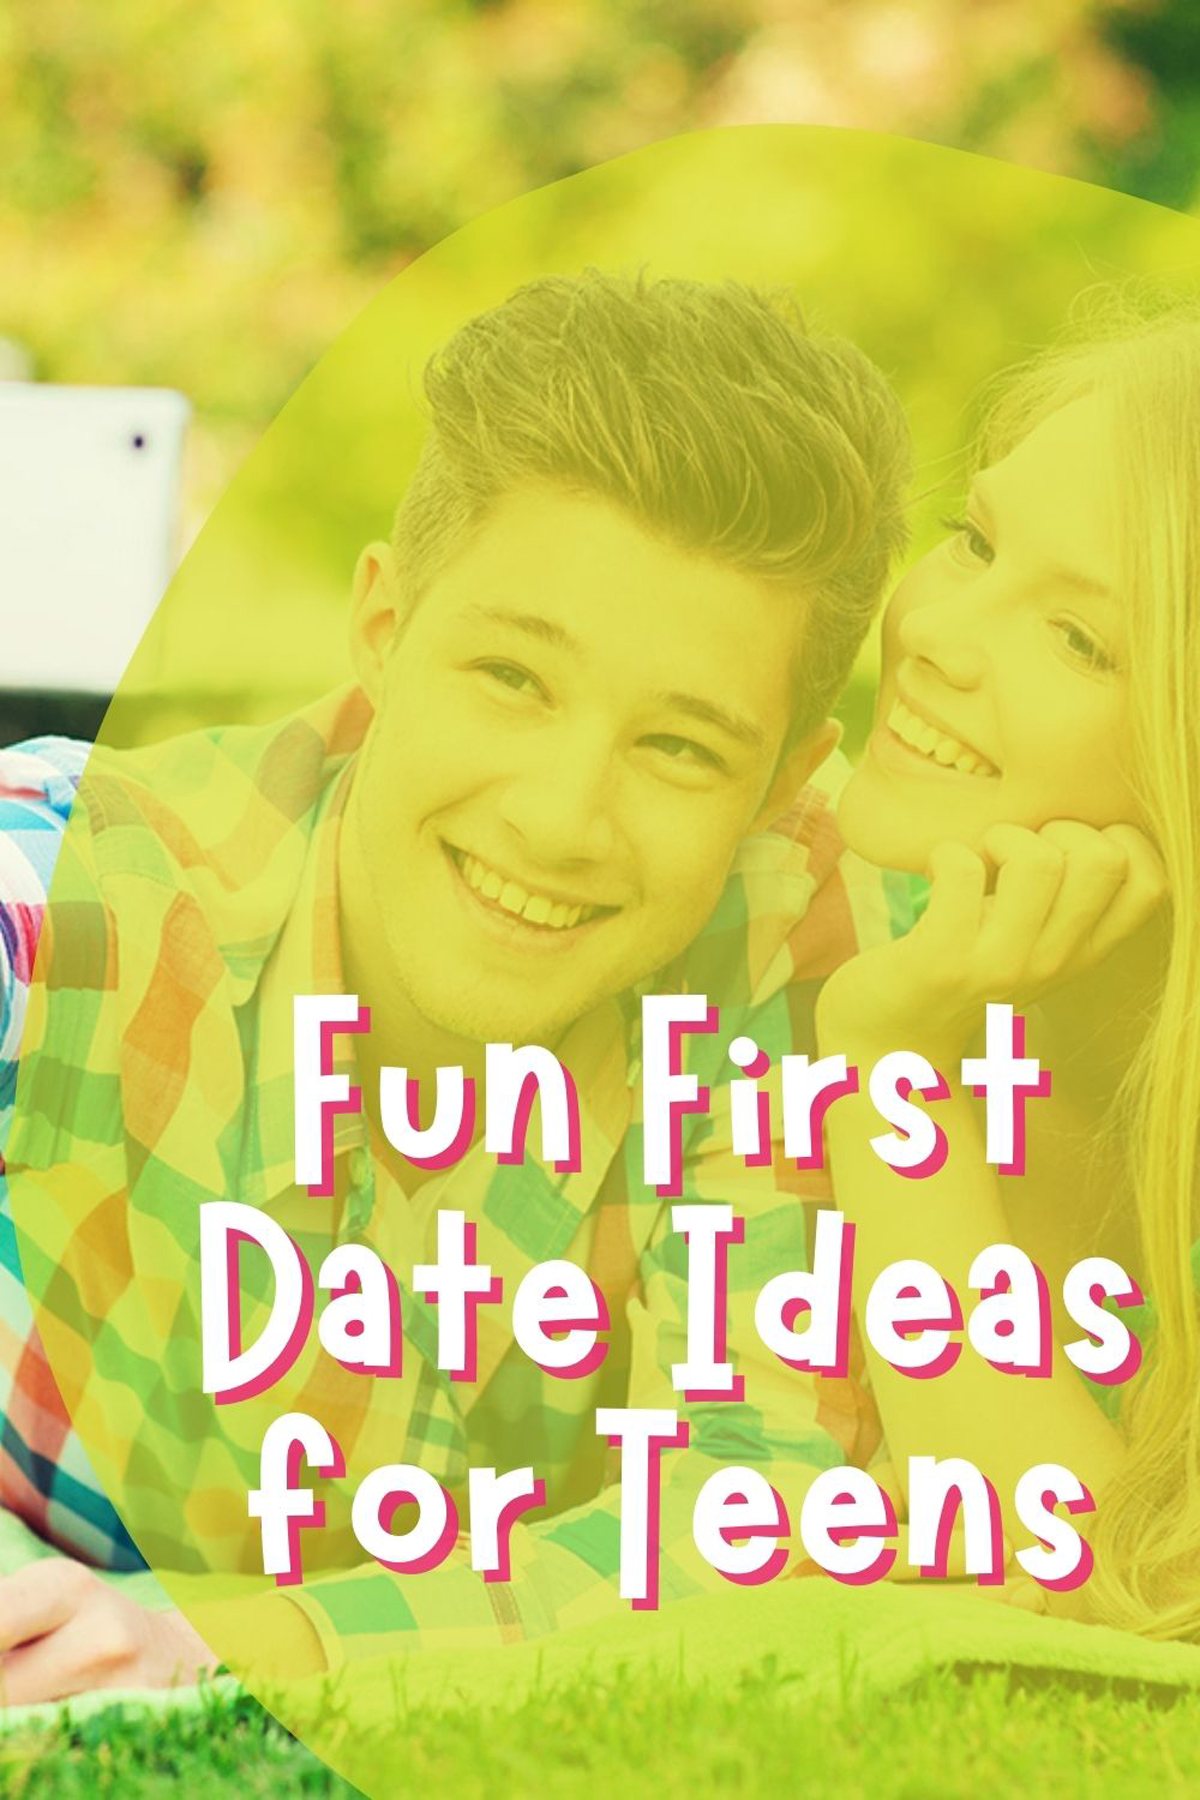 Date Night Ideas for Teens